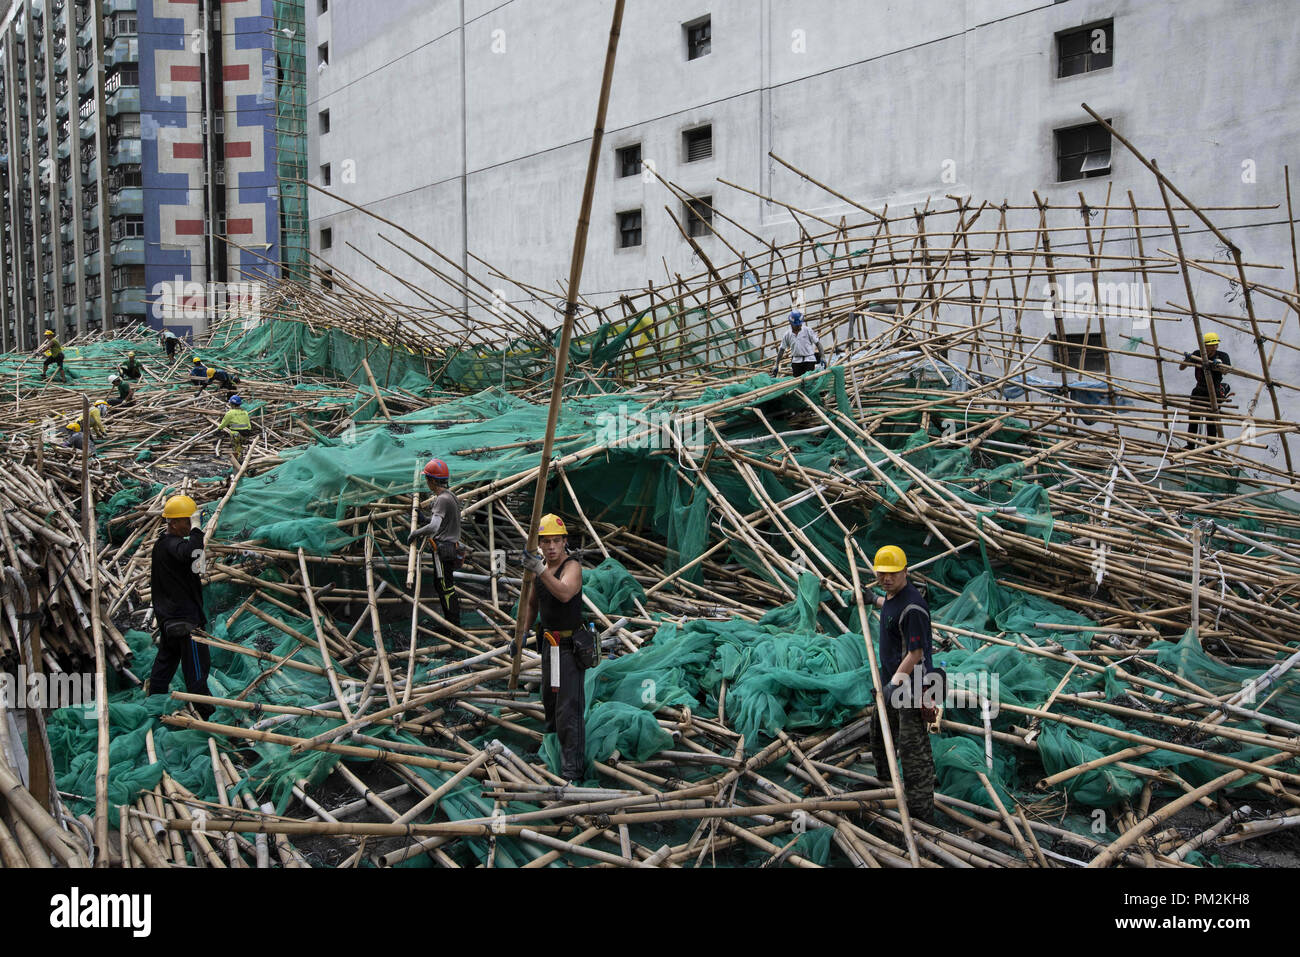 Hong Kong, Kowloon, China. 17th Sep, 2018. Workers remove bamboo scaffolding after it has collapse, fall and blocked the street. Super Typhoon Mangkhut aftermath is visible in most districts of Hong Kong.The super typhoon Mangkhut has passed next to Hong Kong on the 16th September causing large scale damages around the city, there are 432 people injured due to the storm with 2 still in critical condition. Credit: Miguel Candela/SOPA Images/ZUMA Wire/Alamy Live News - Stock Image